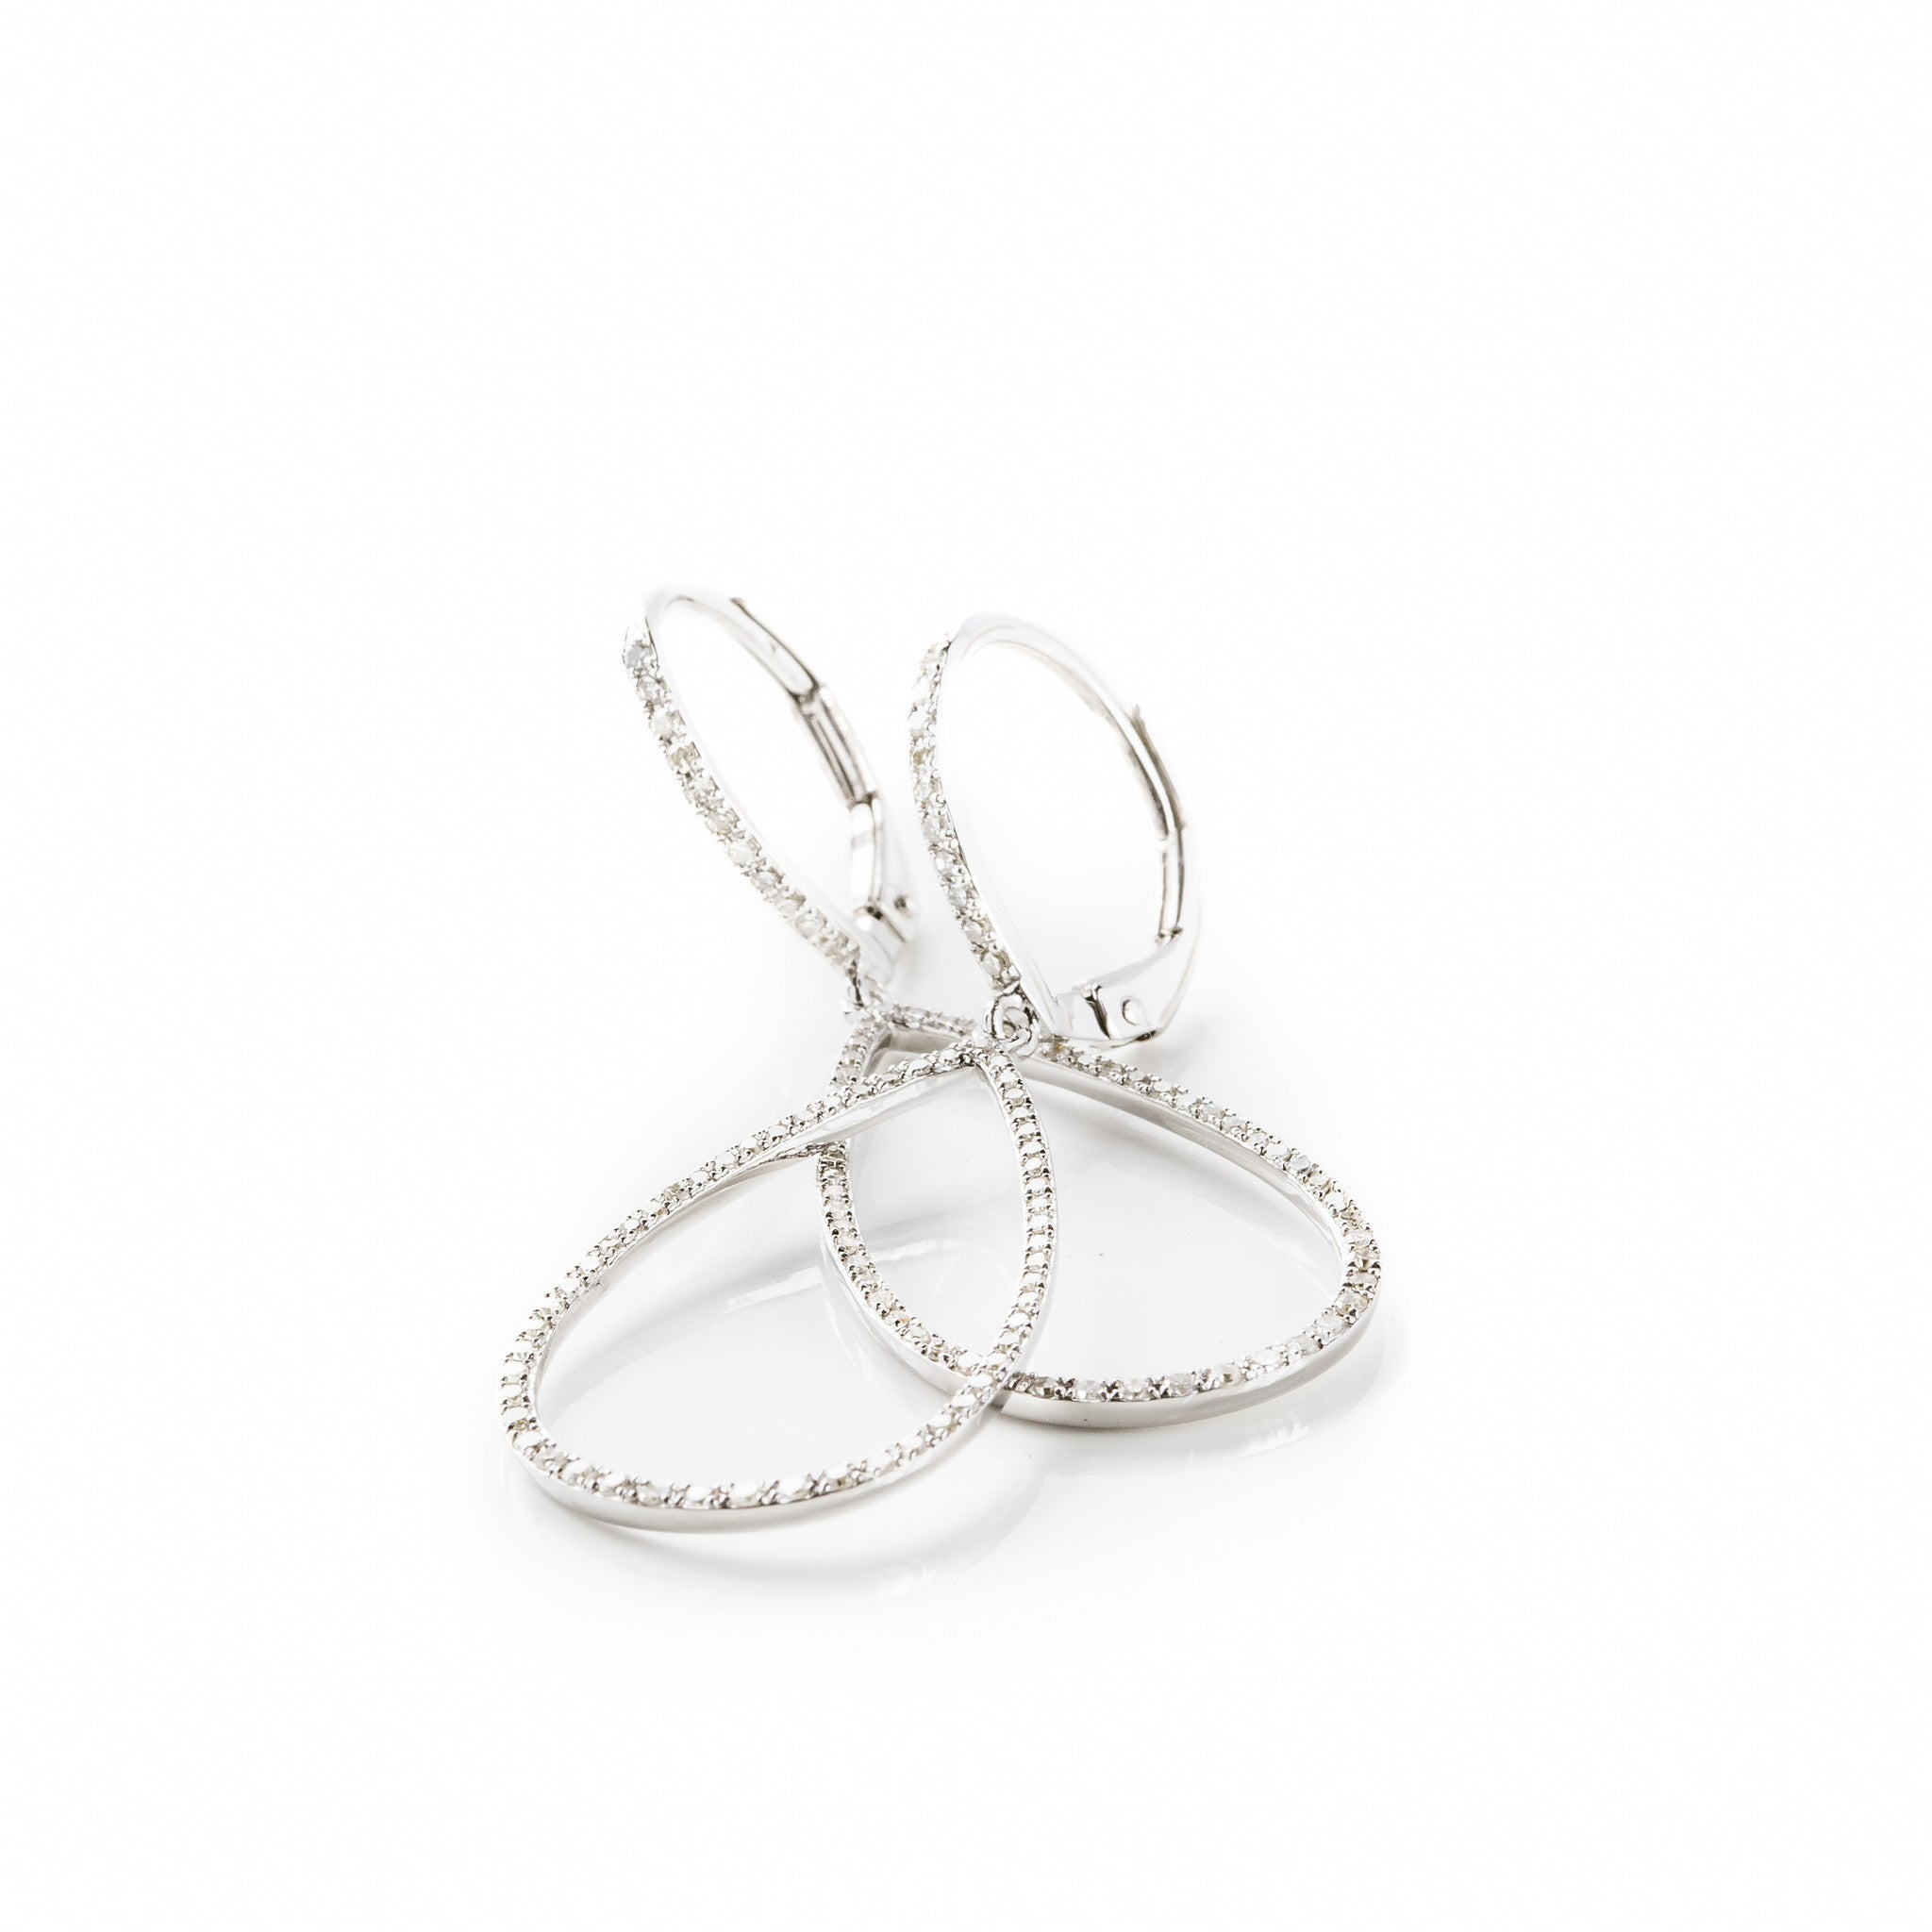 Diamond Teardrop Hoop Earrings by Atheria Jewelry